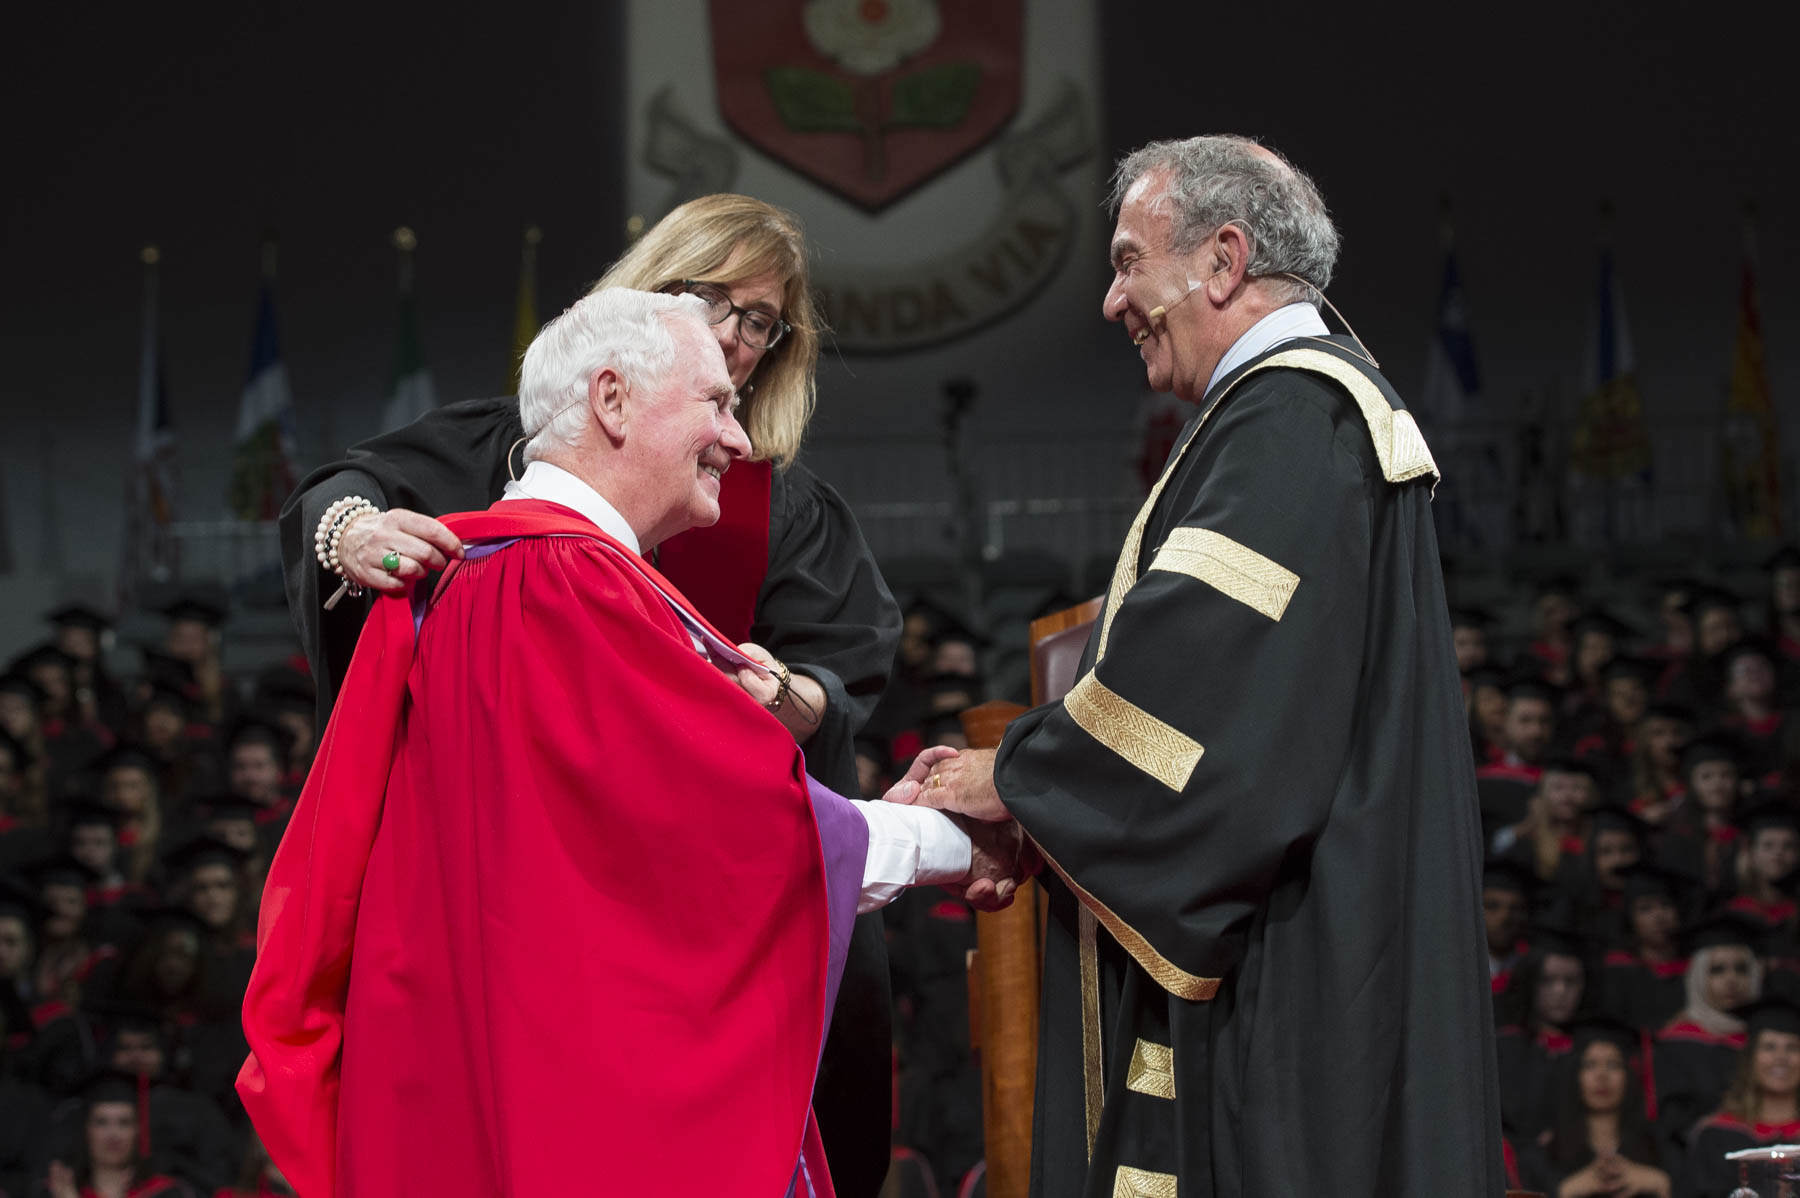 Mr. Greg Sorbara, Chancellor of York University, presented His Excellency with an honorary Doctor of Laws degree.